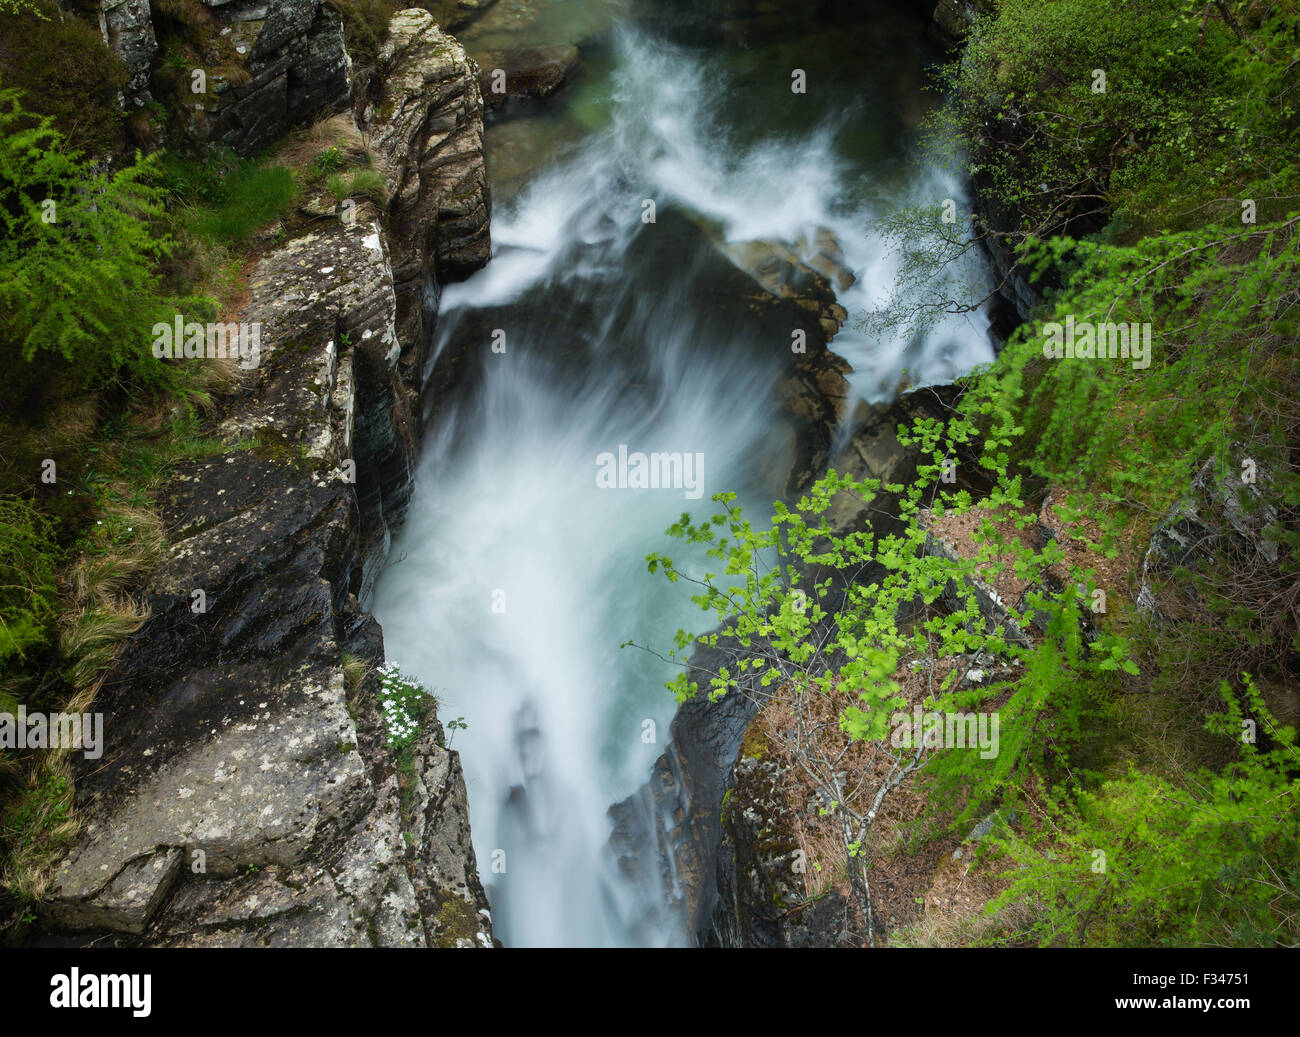 the Earl of Mar's Punch Bowl at the Lin of Quoich, Deeside, Aberdeenshire, Scotland, UK - Stock Image